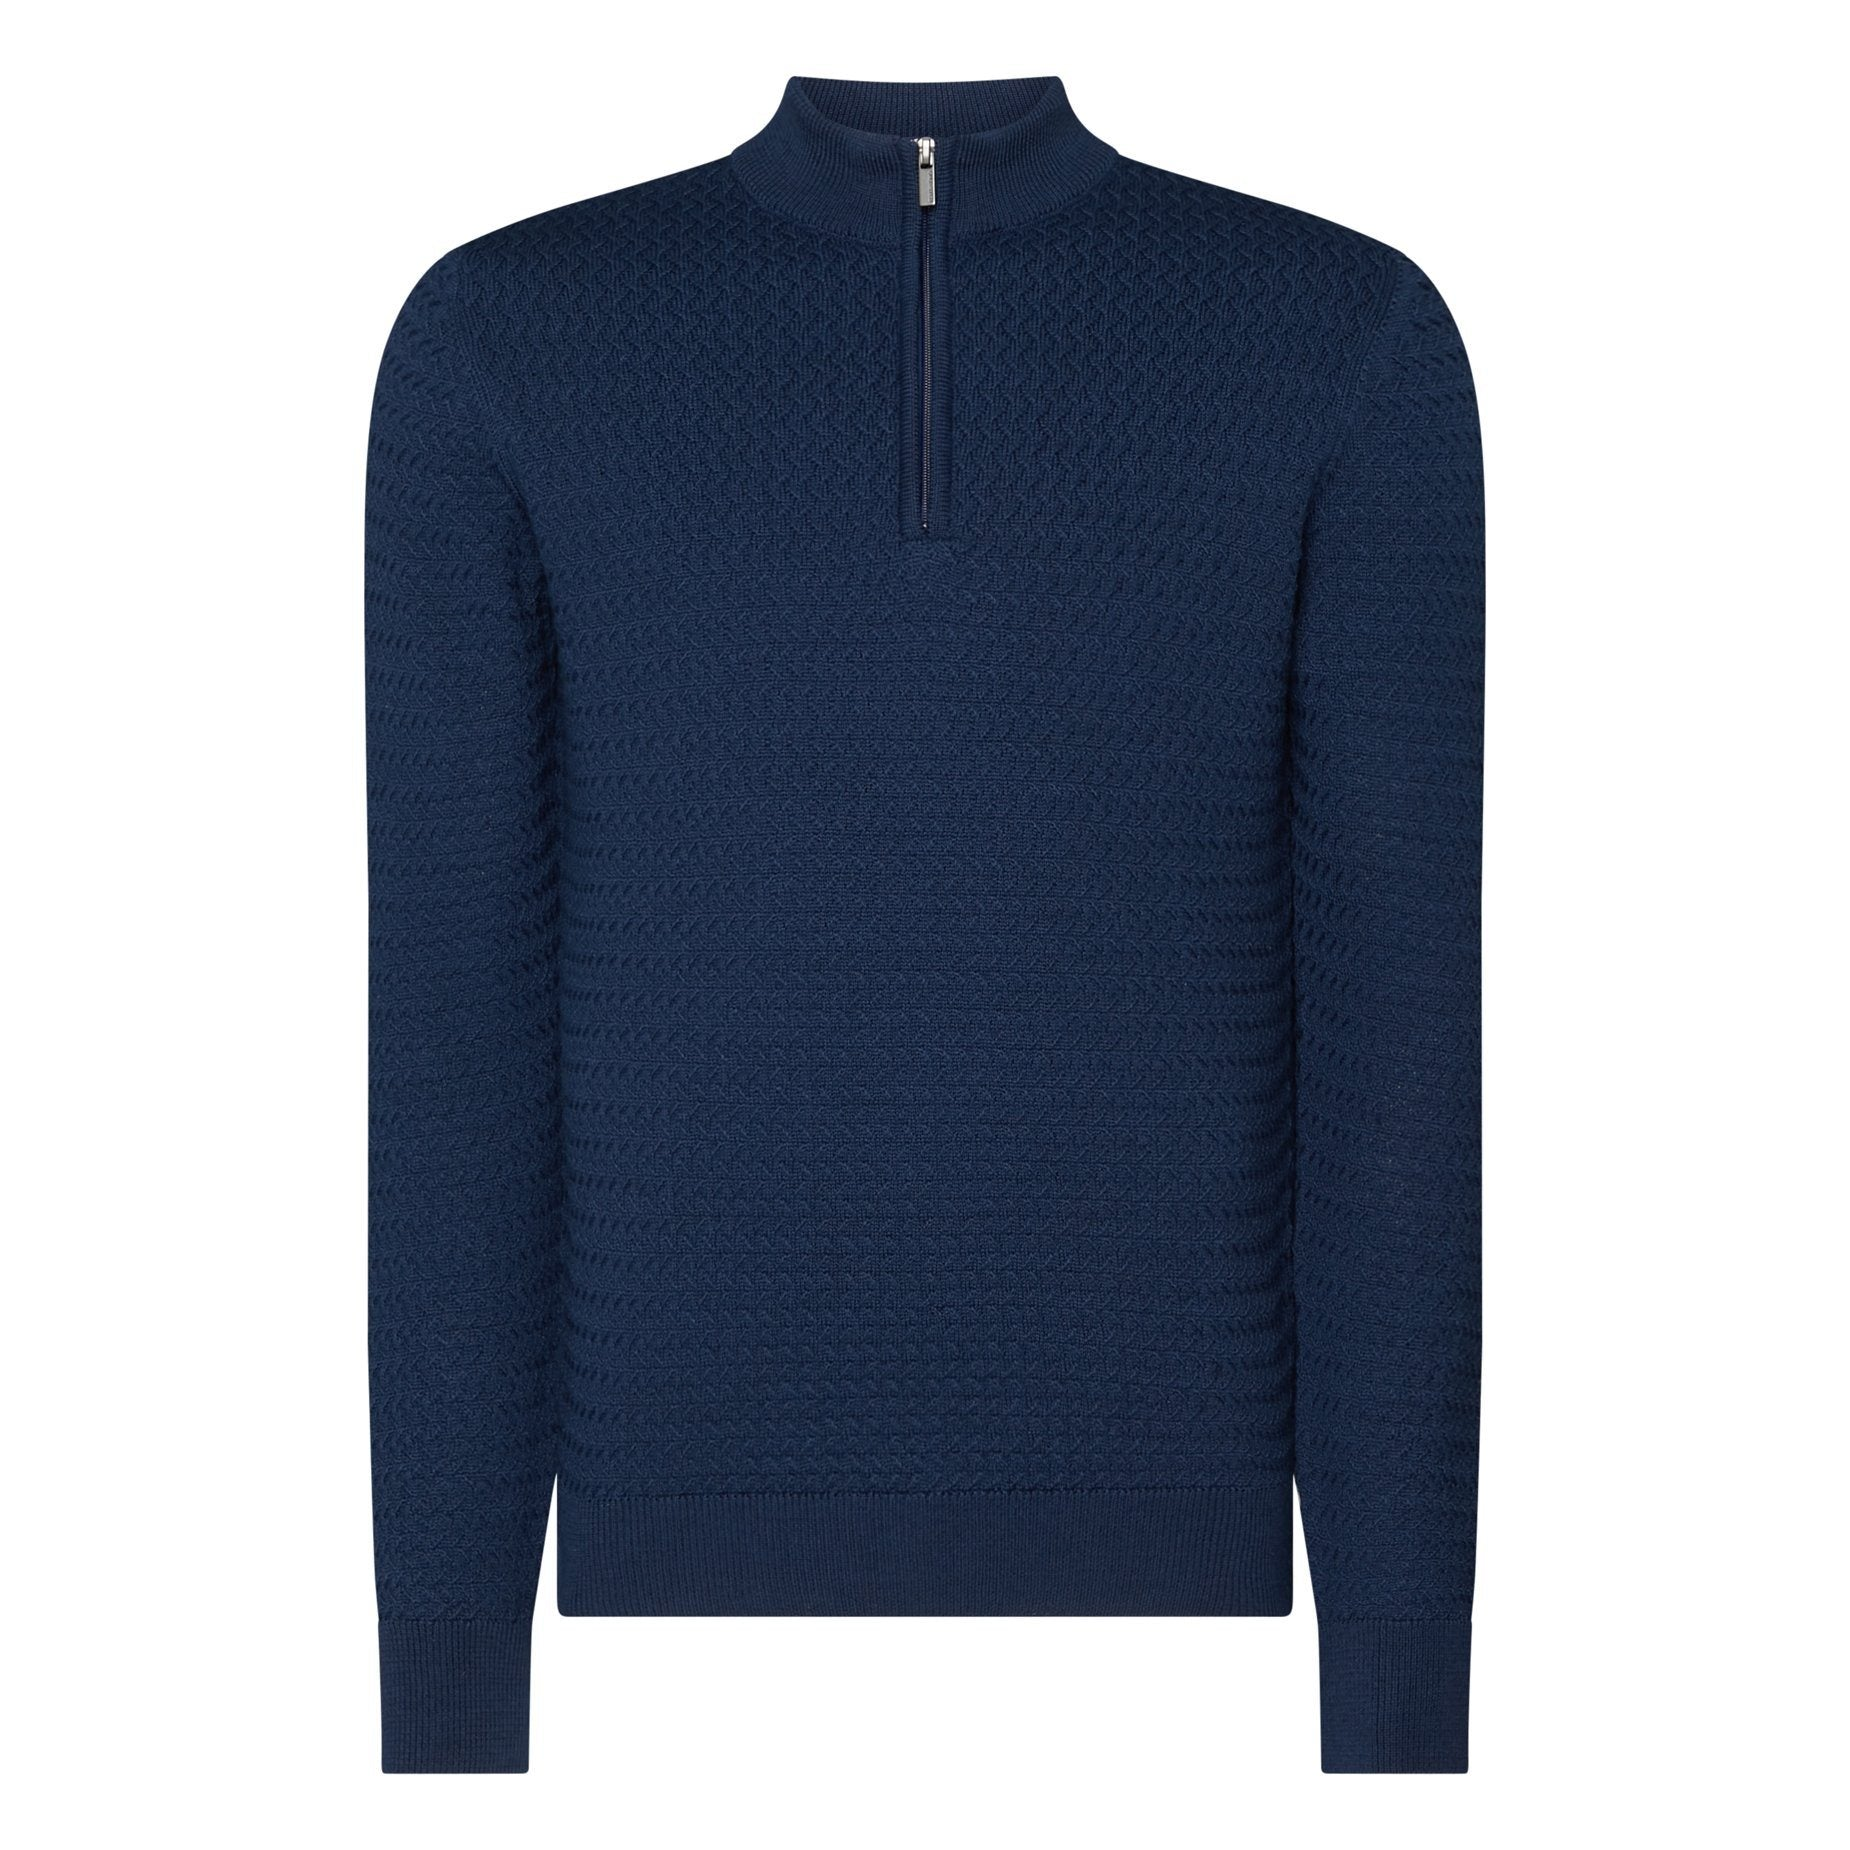 Blue Half Zip Sweater